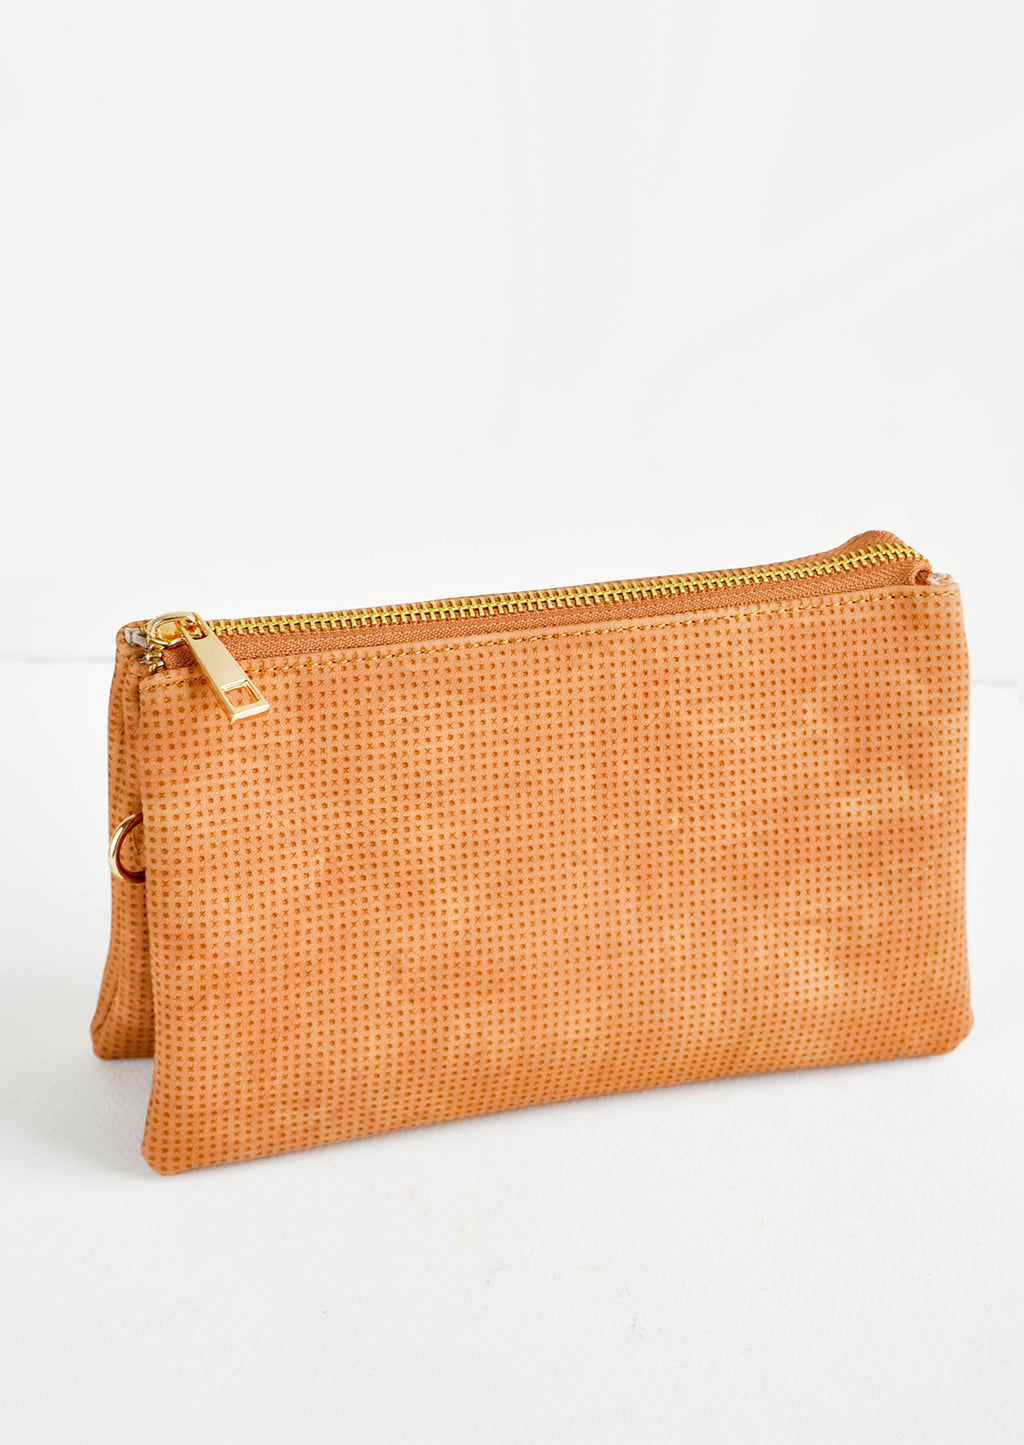 Caramel Perforated: Orange fabric clutch purse featuring two attached pouches with gold zipper.